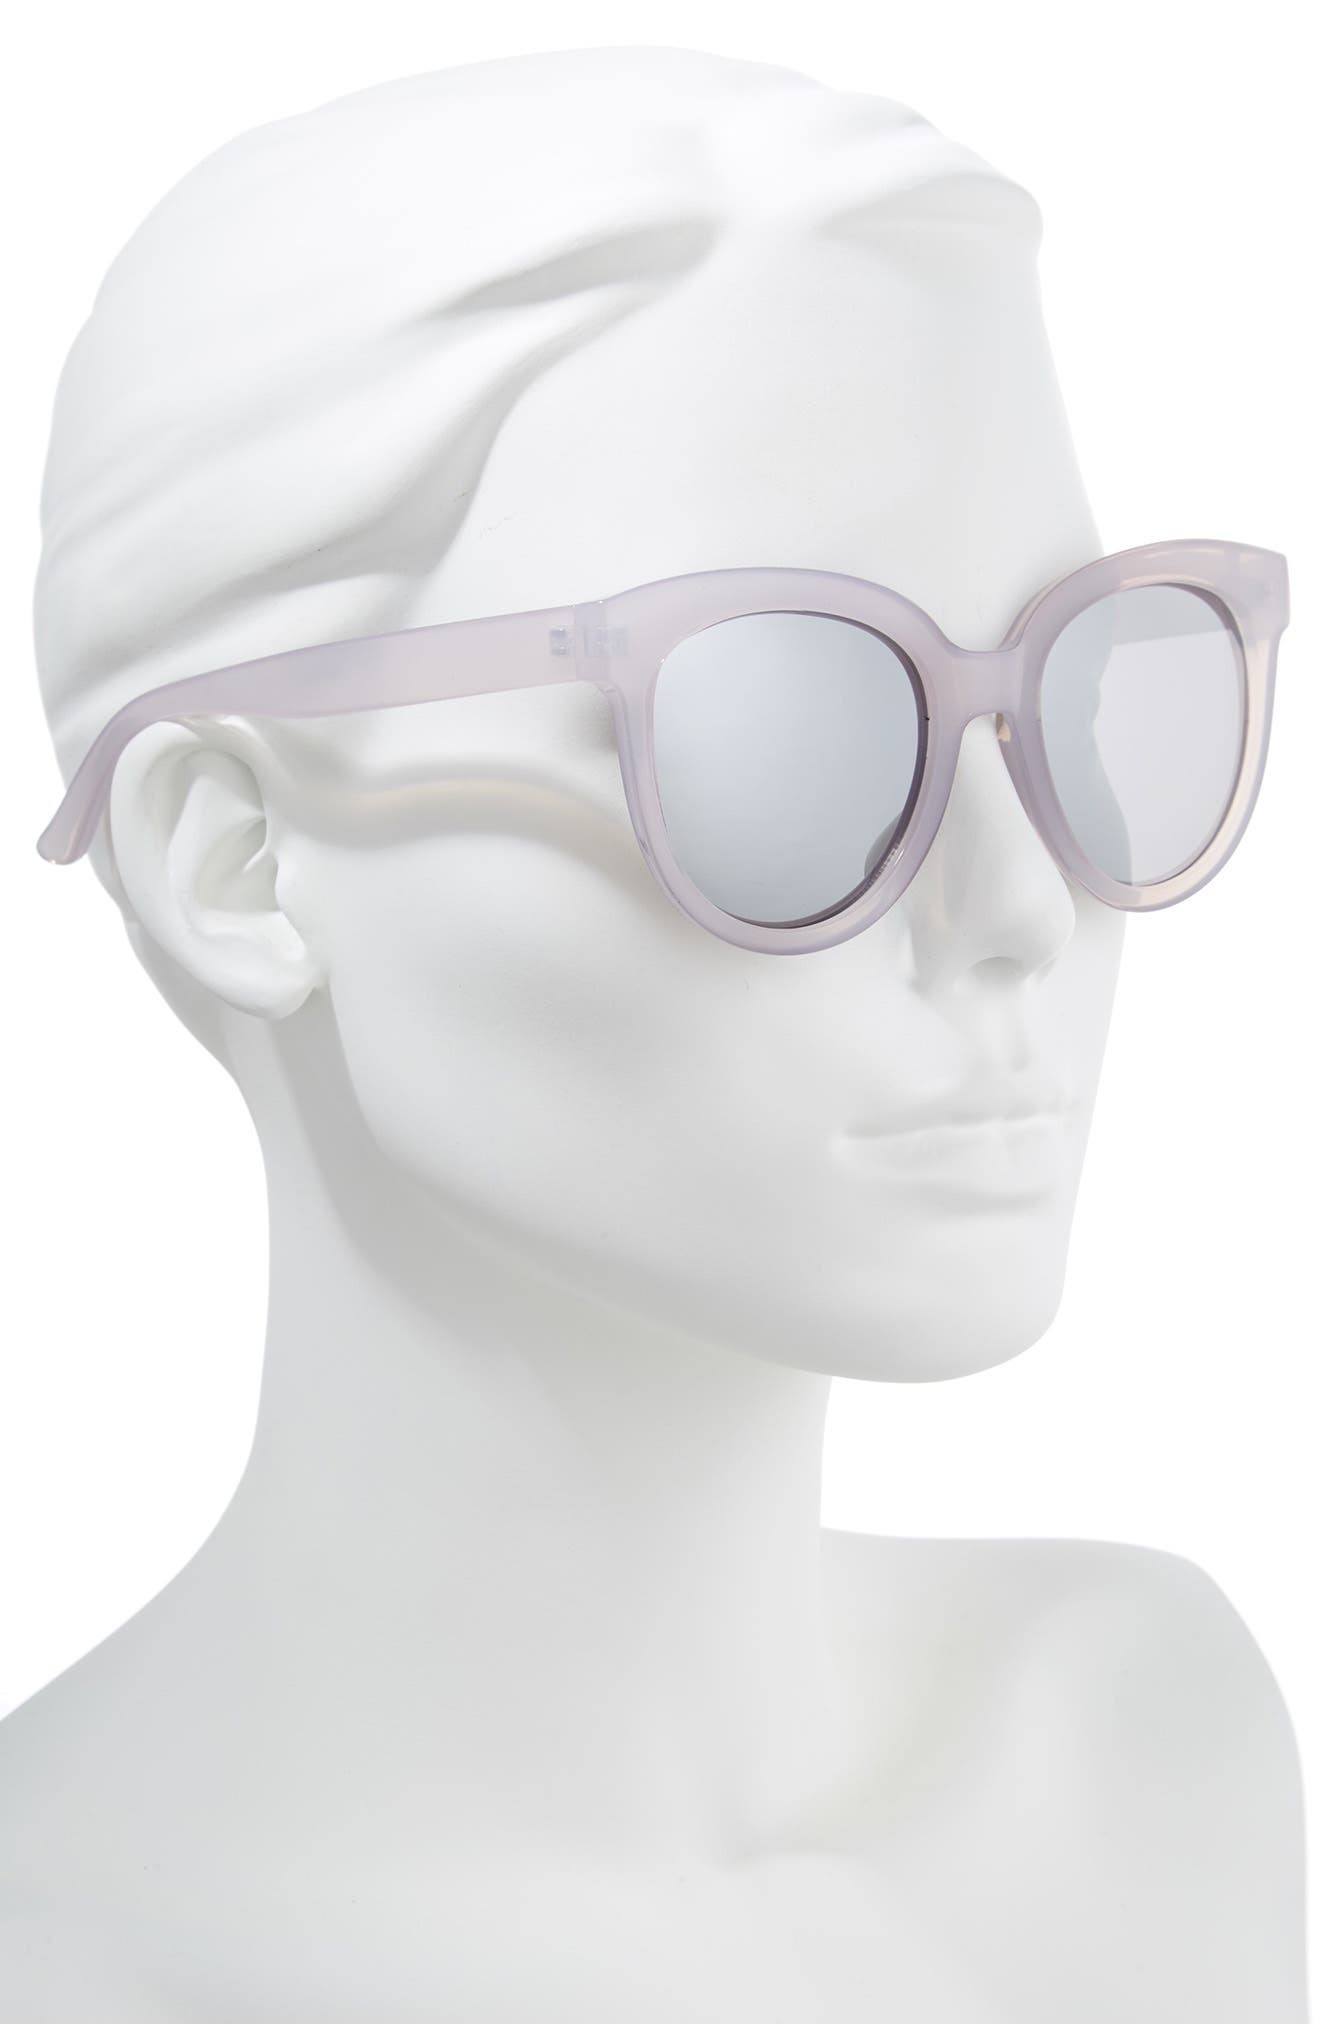 53mm Frosted Cat Eye Sunglasses,                             Alternate thumbnail 2, color,                             Milky Gray/ Silver